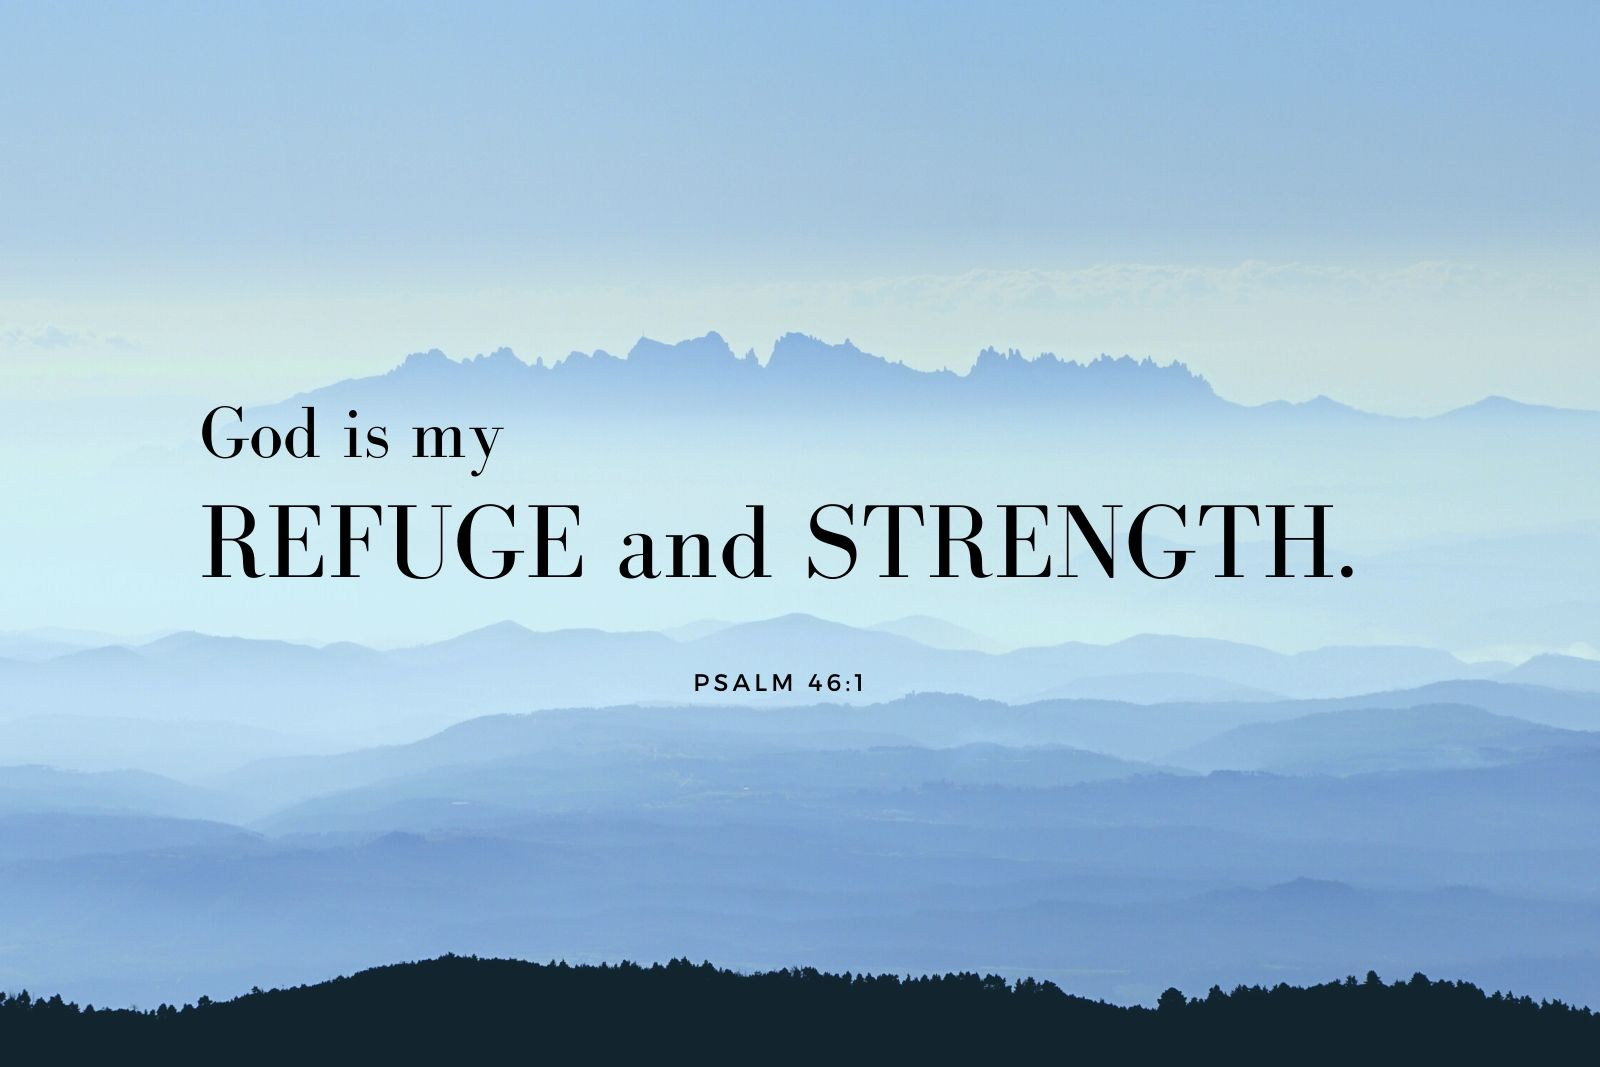 God is my refuge and strength. Psalm 46:1